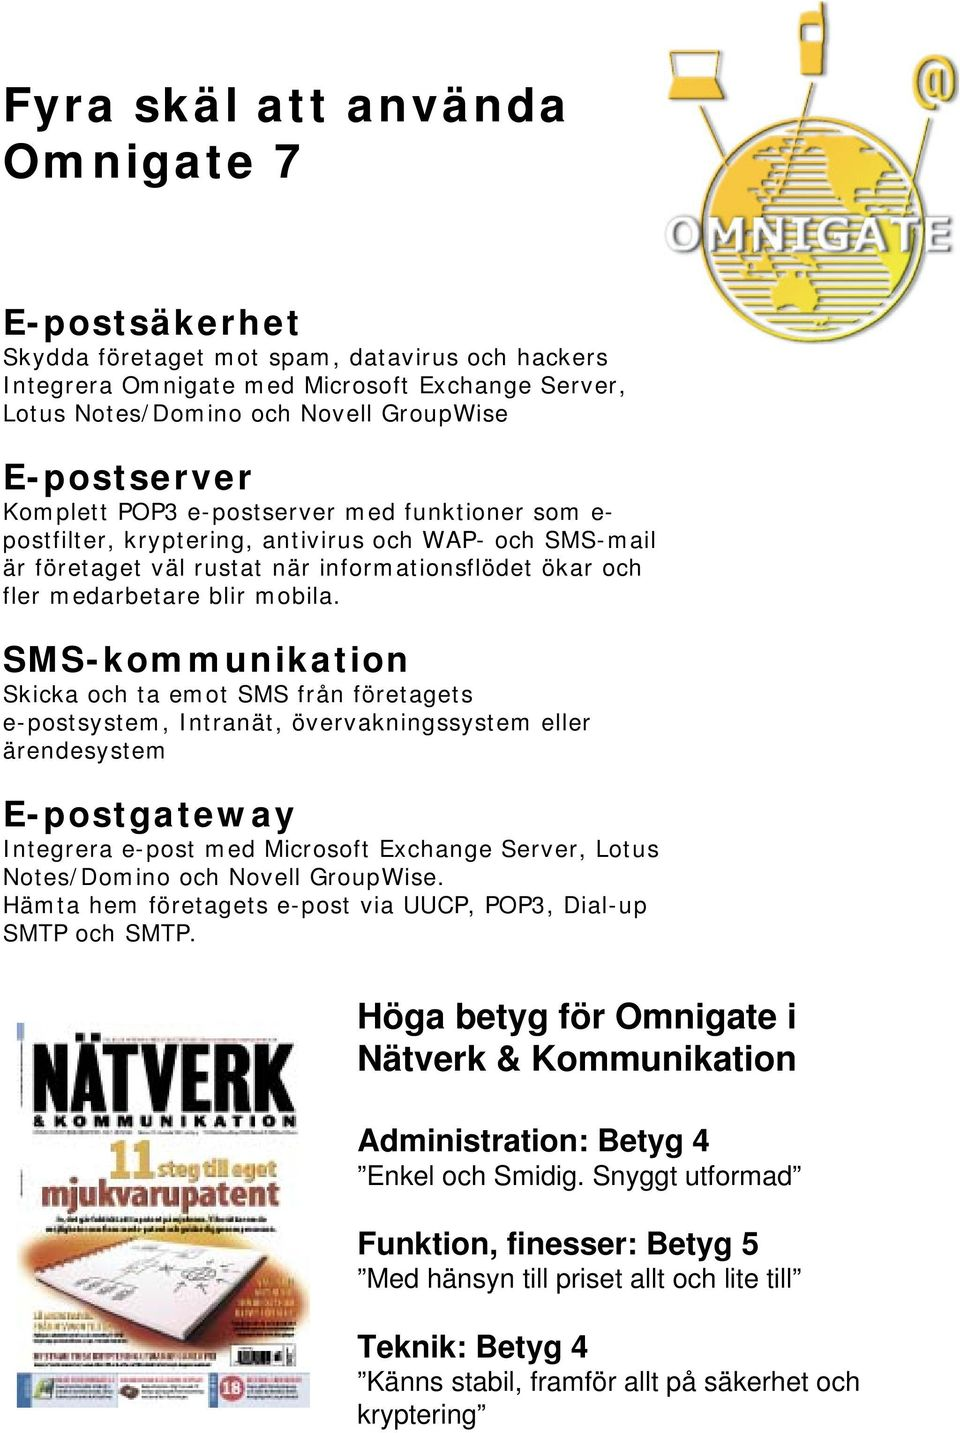 SMS-kommunikation Skicka och ta emot SMS från företagets e-postsystem, Intranät, övervakningssystem eller ärendesystem E-postgateway Integrera e-post med Microsoft Exchange Server, Lotus Notes/Domino